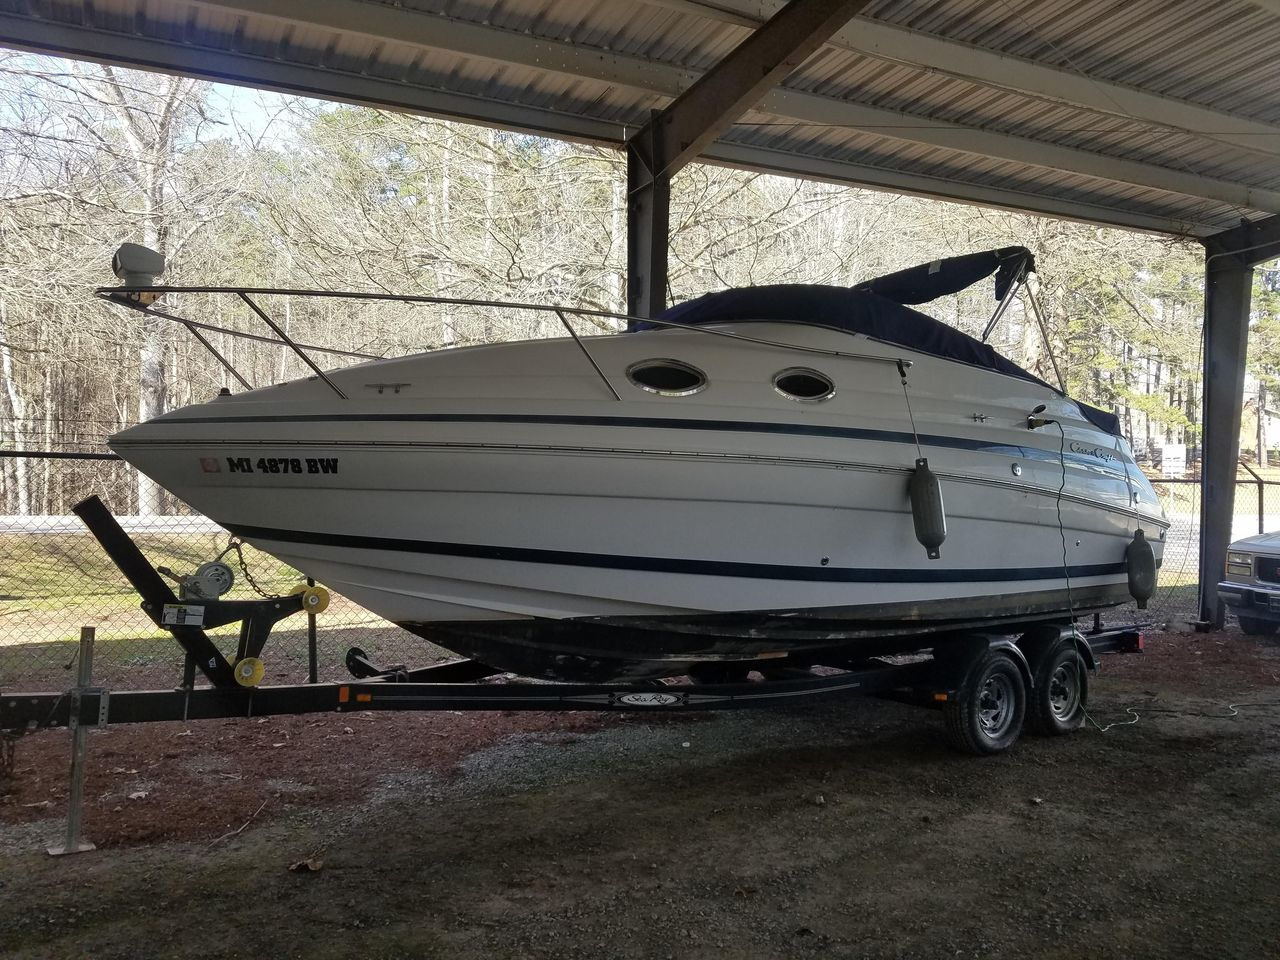 2001 Used Chris-Craft 248 Express Cruiser Boat For Sale - $13,500